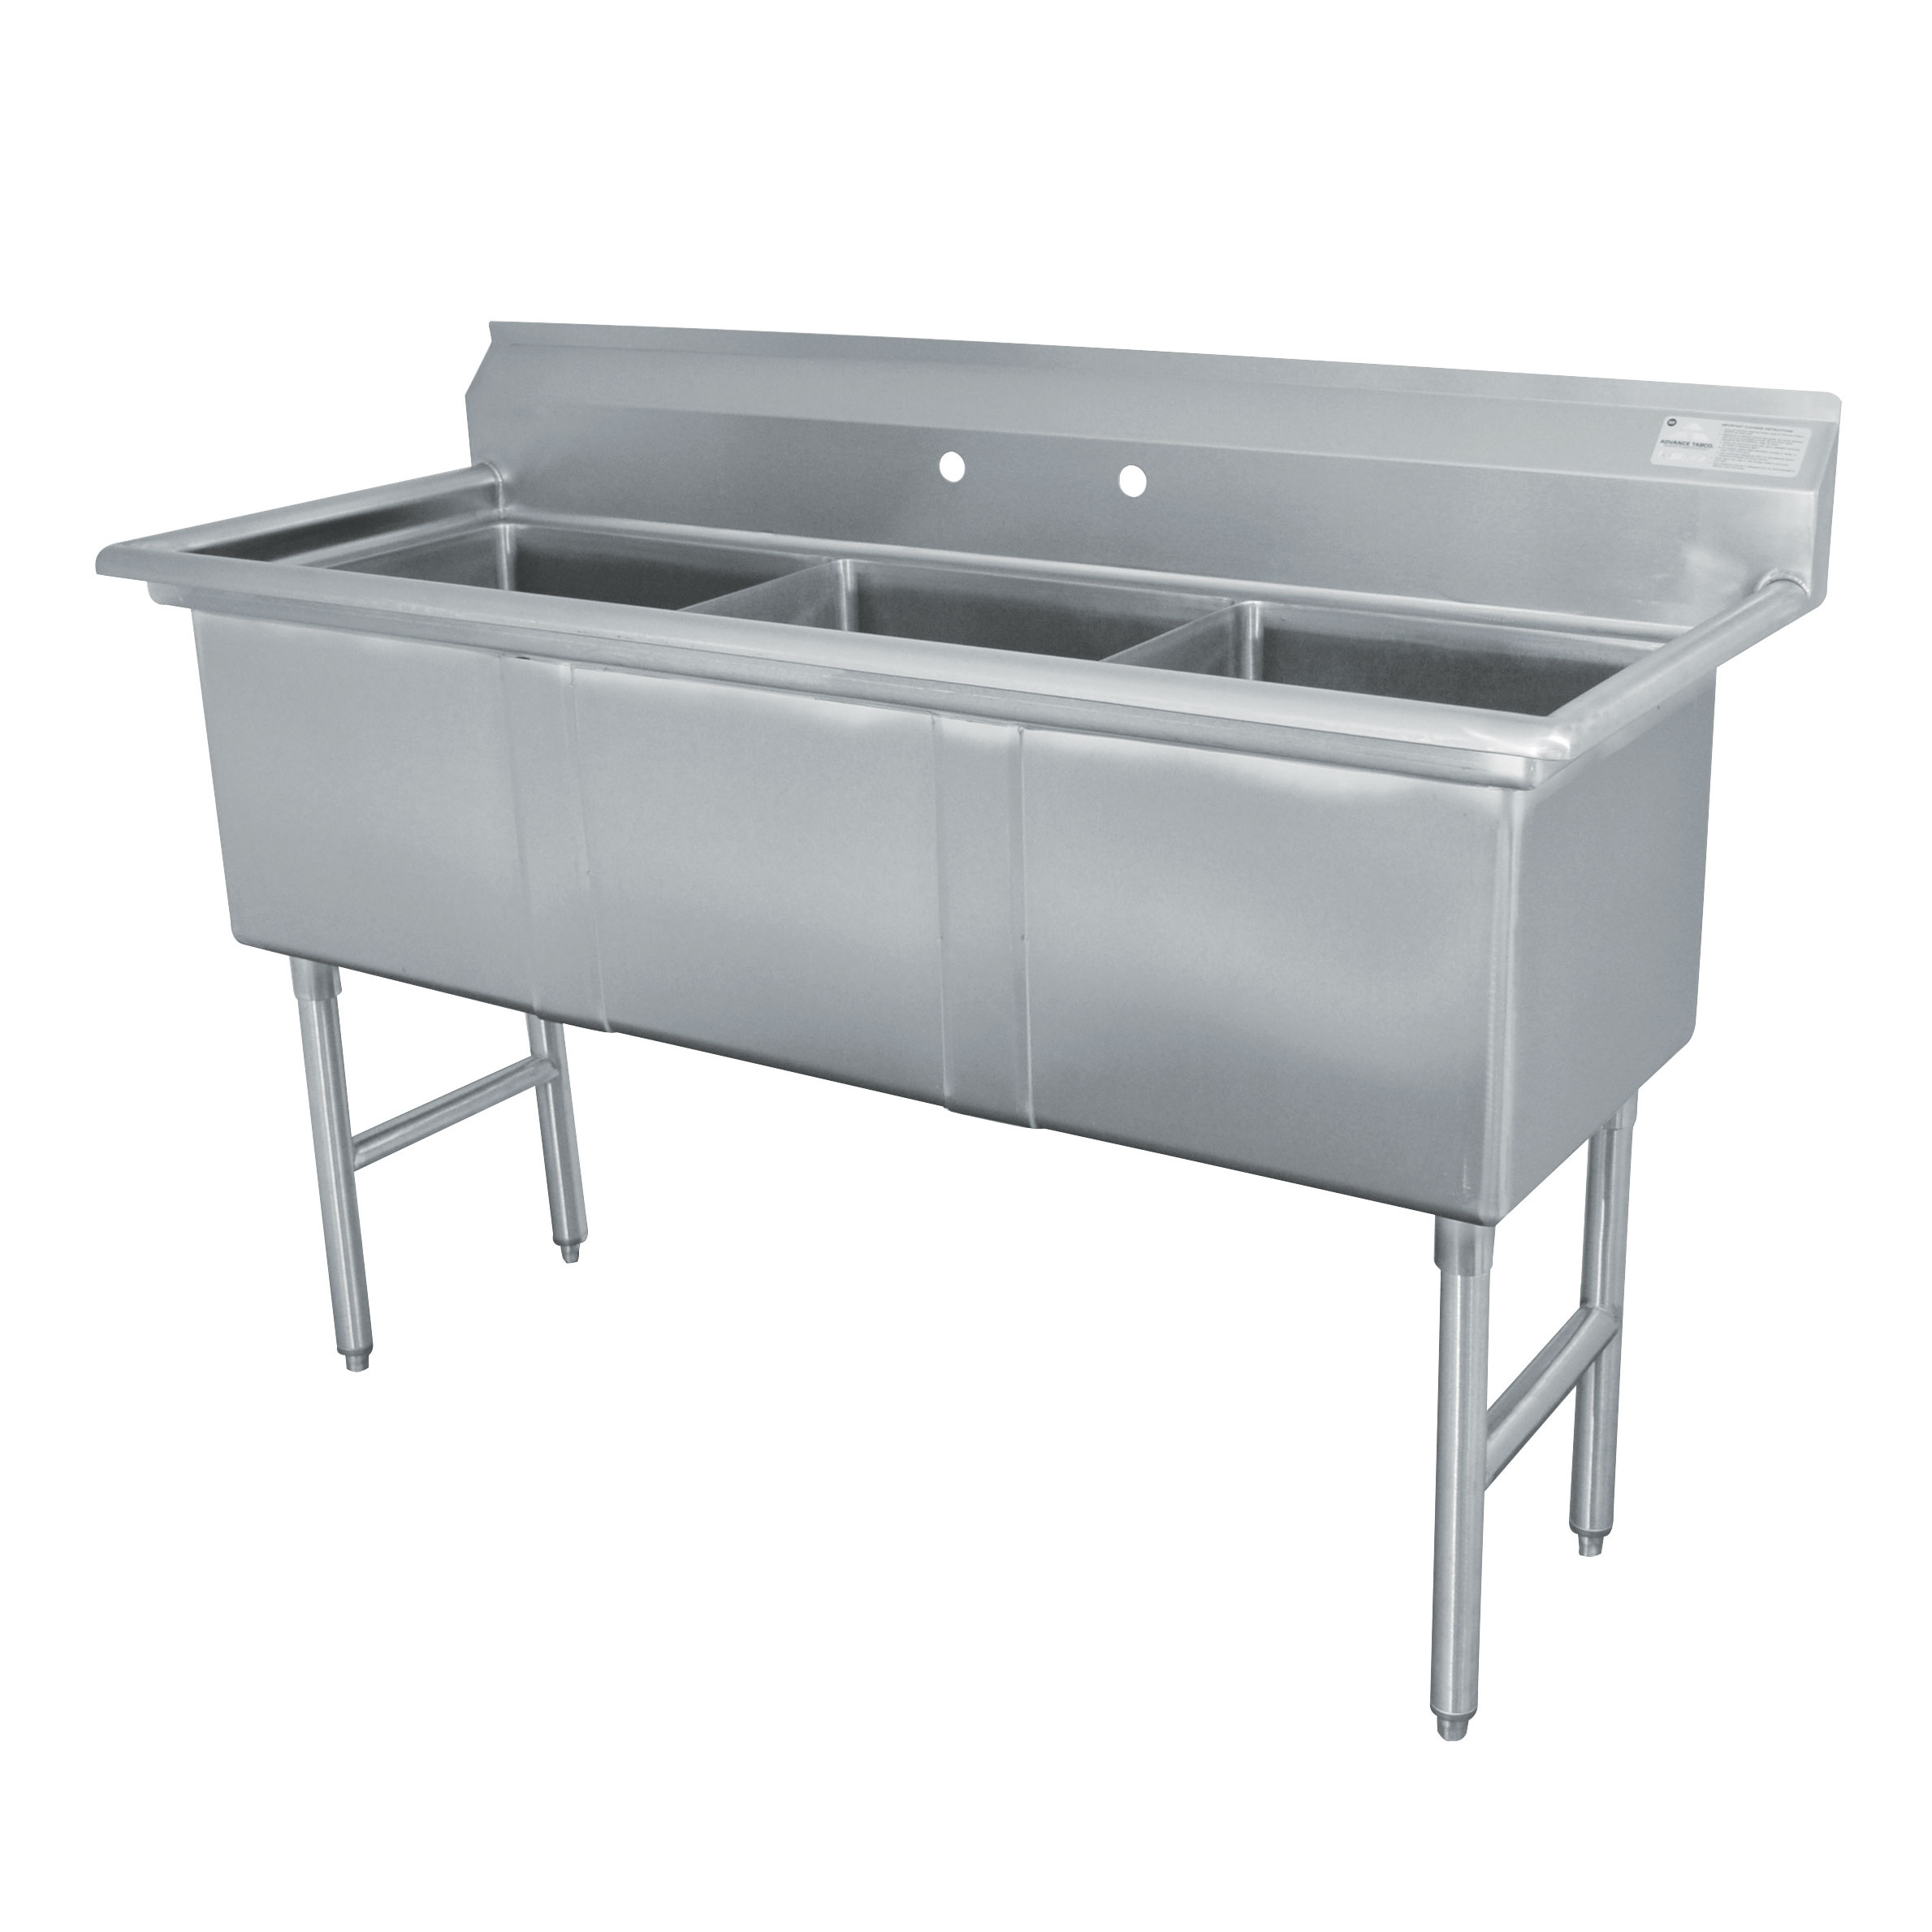 Advance Tabco FC-3-1620-X sink, (3) three compartment